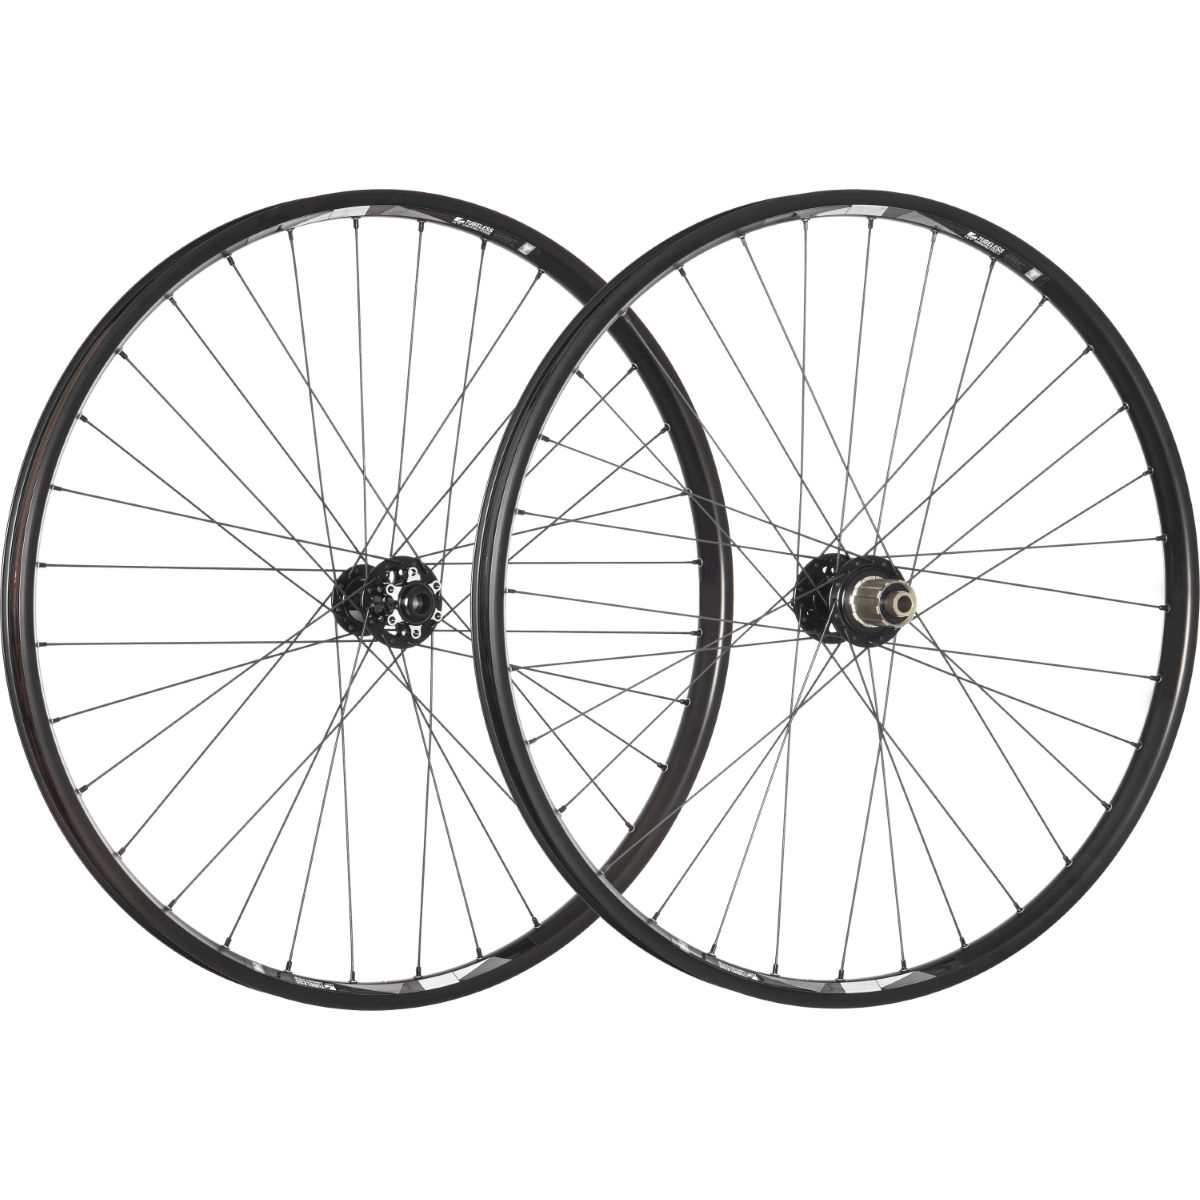 Nukeproof Nukeproof Neutron V1 MTB Wheelset   Wheel Sets